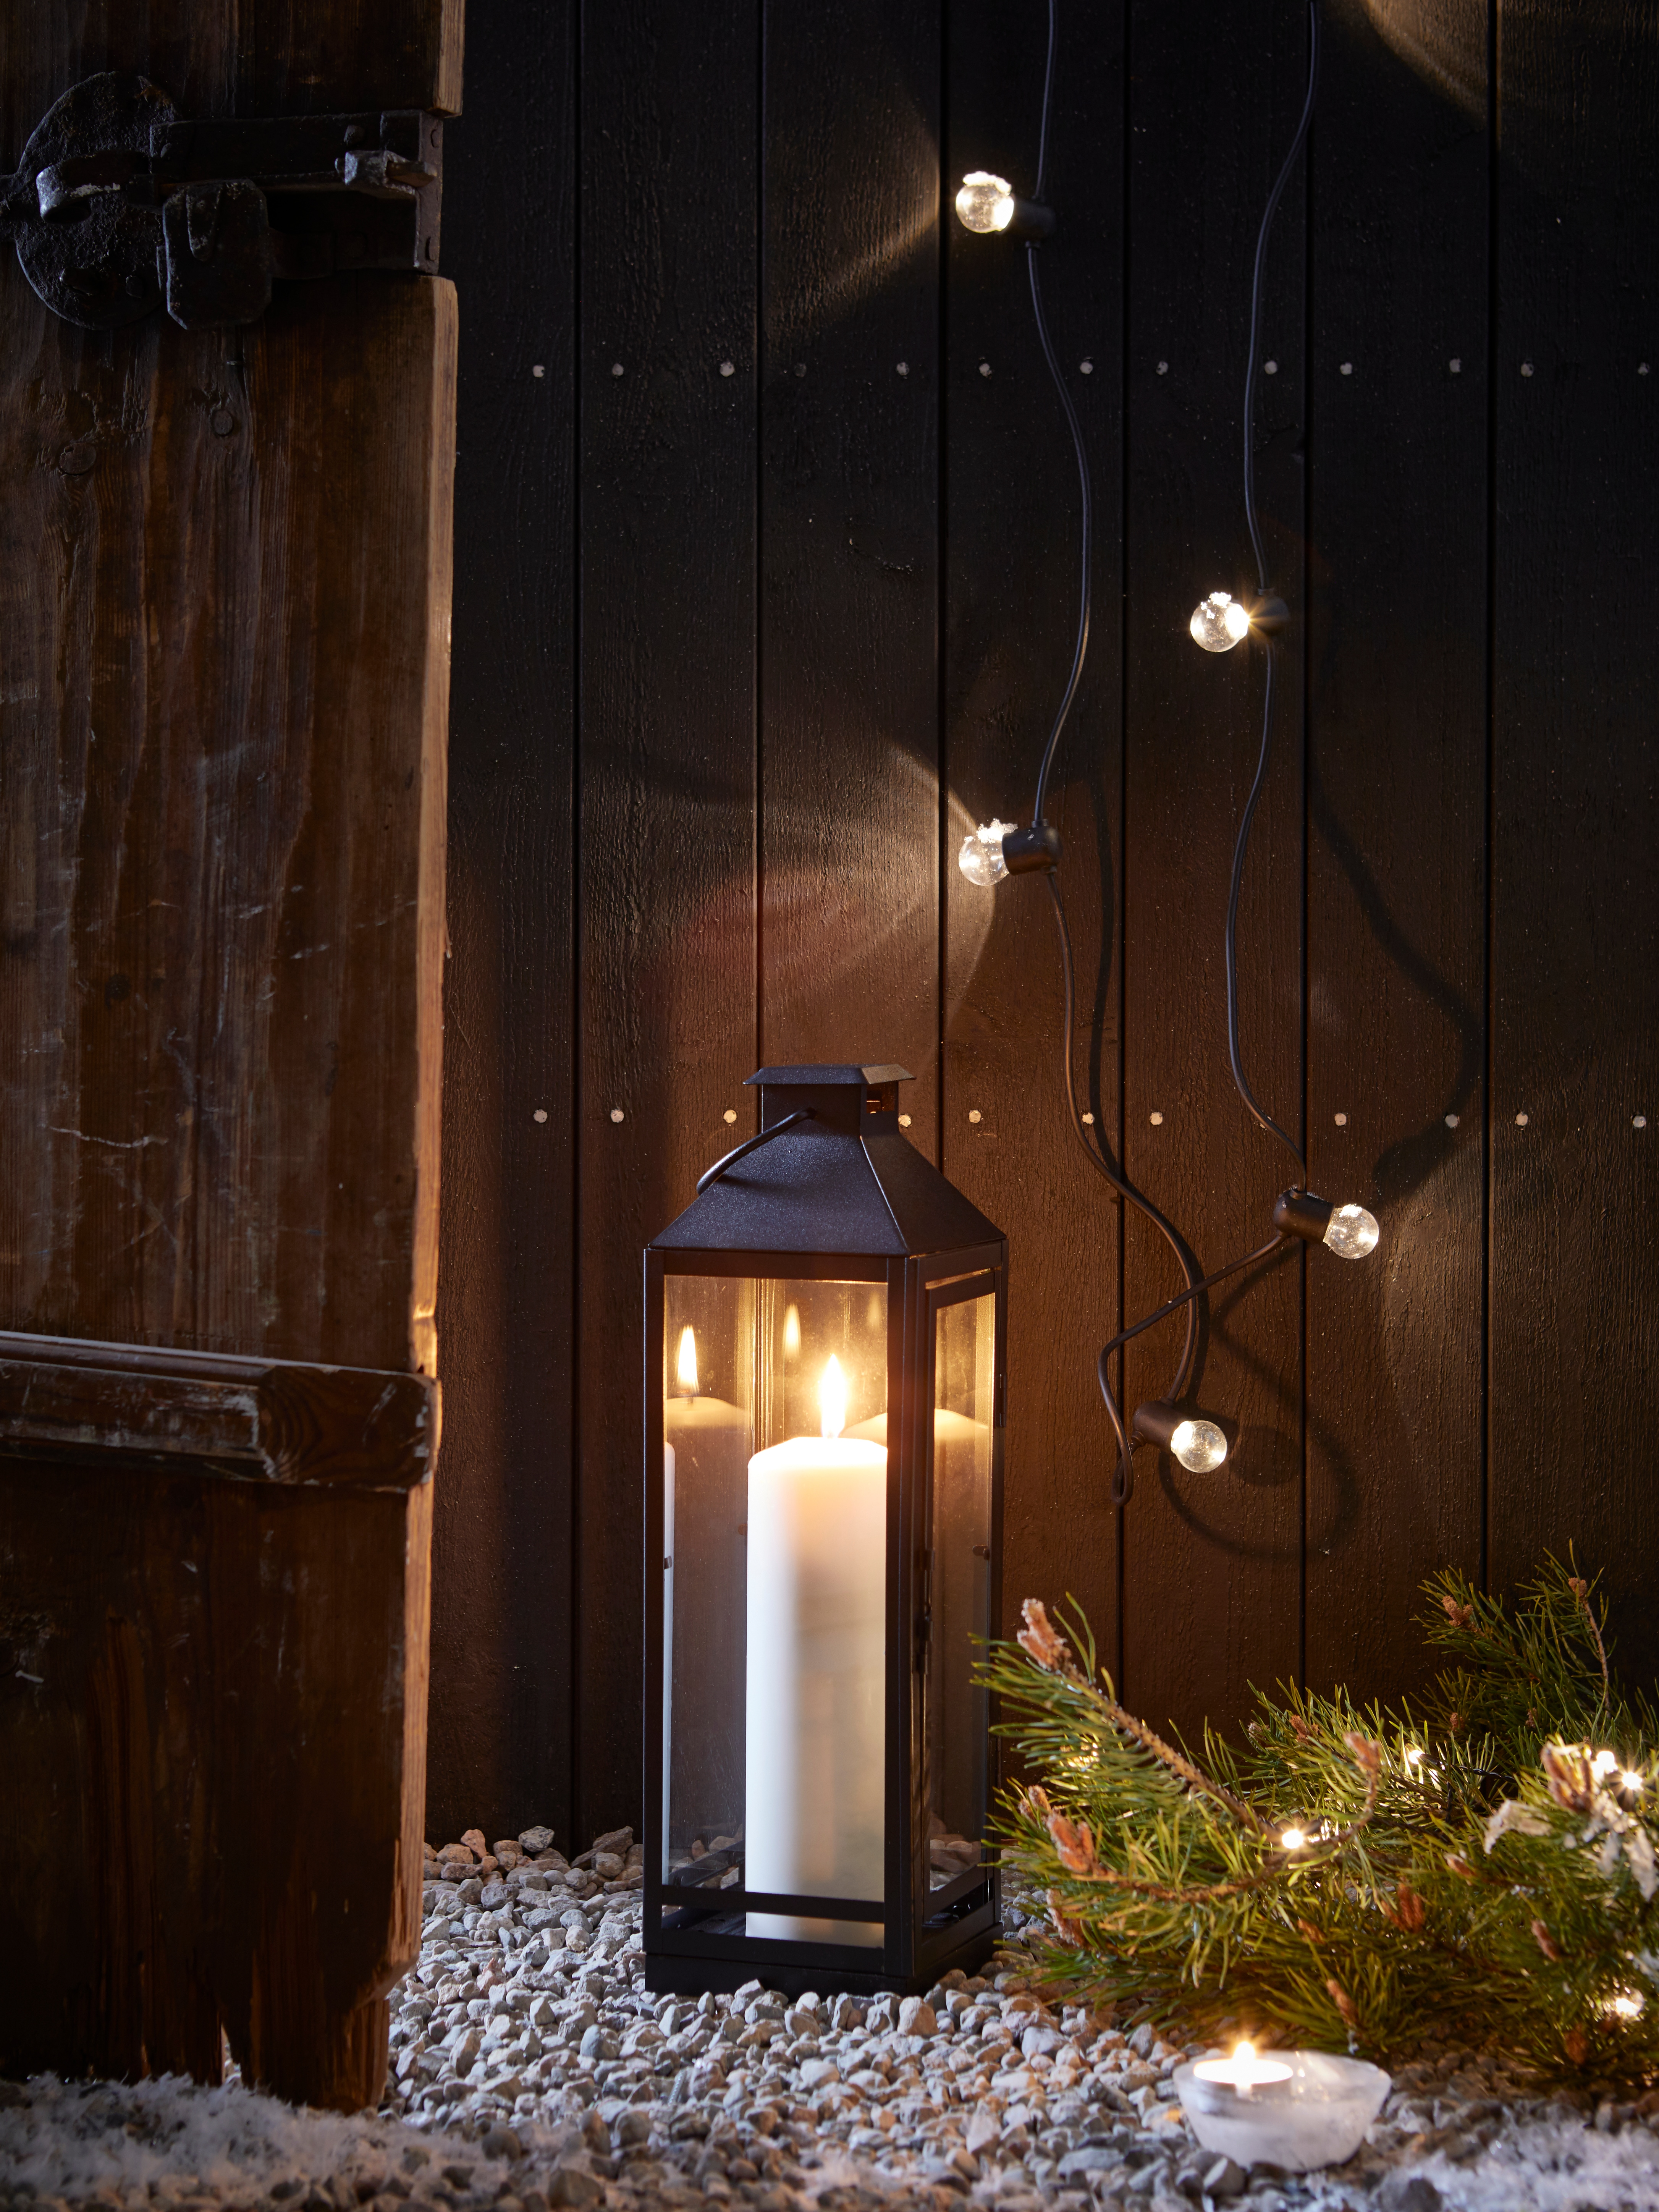 LEDLJUS fairy lights on a wooden fence, with a candle in a black lantern on gravel, a tealight and an evergreen branch.